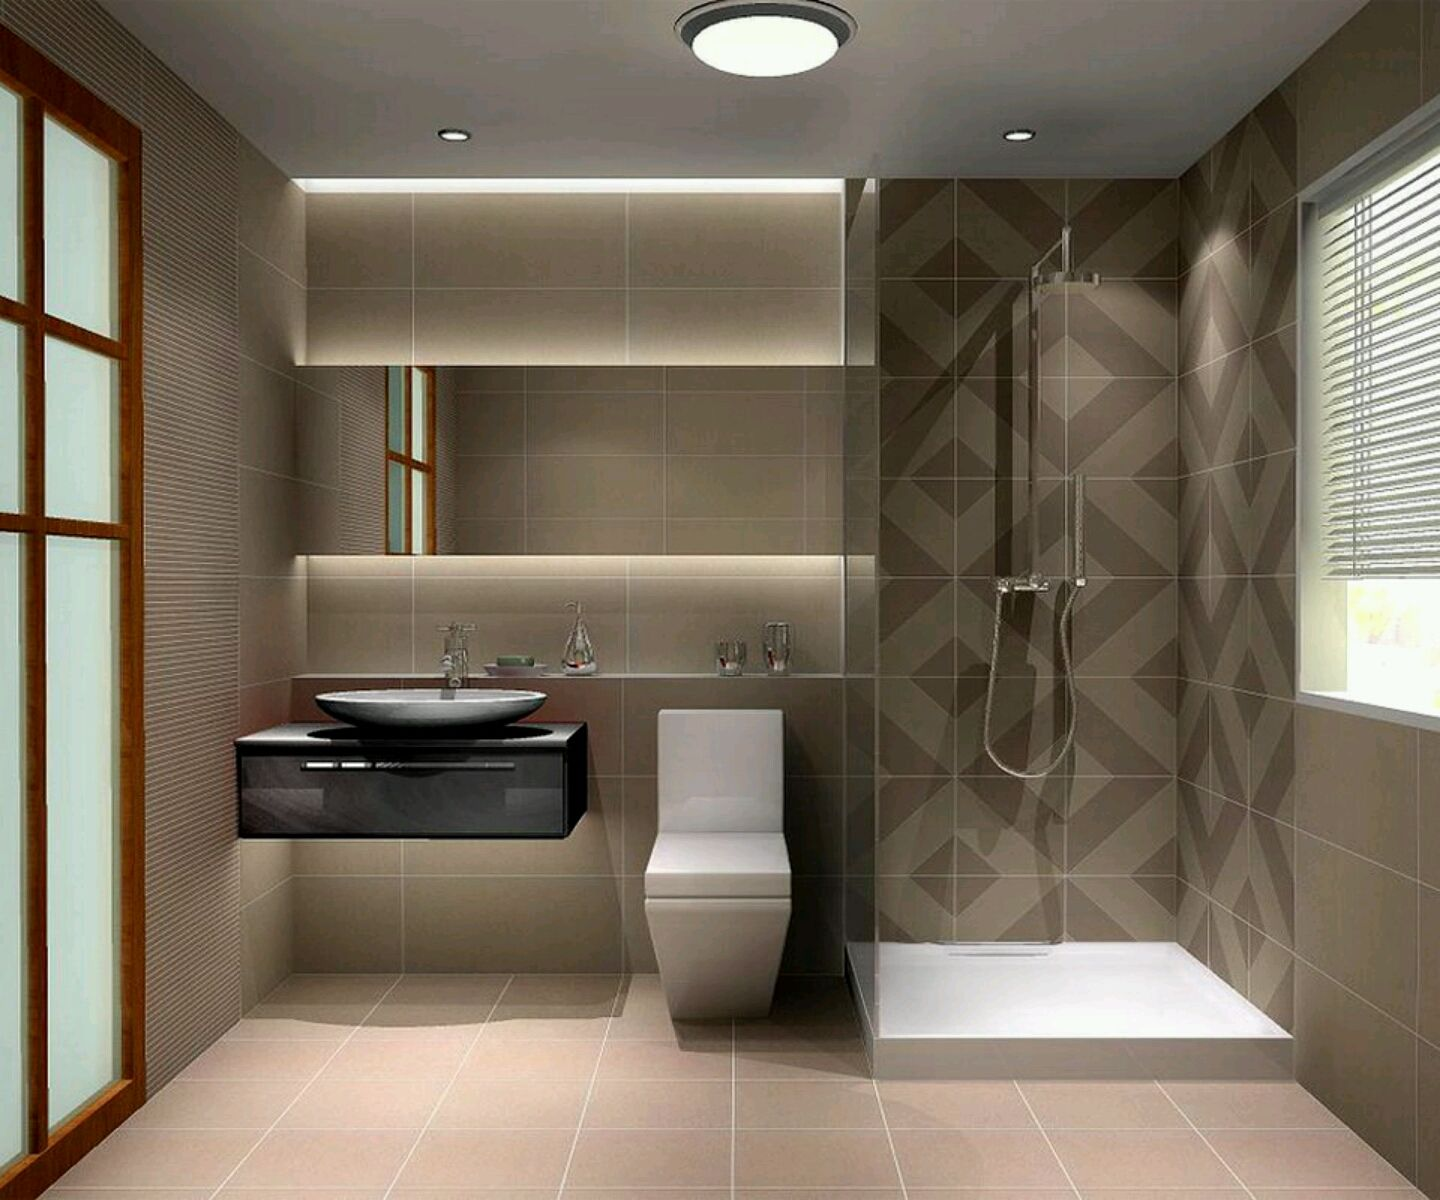 Luxury bathroom layout - Bathroom Ideas